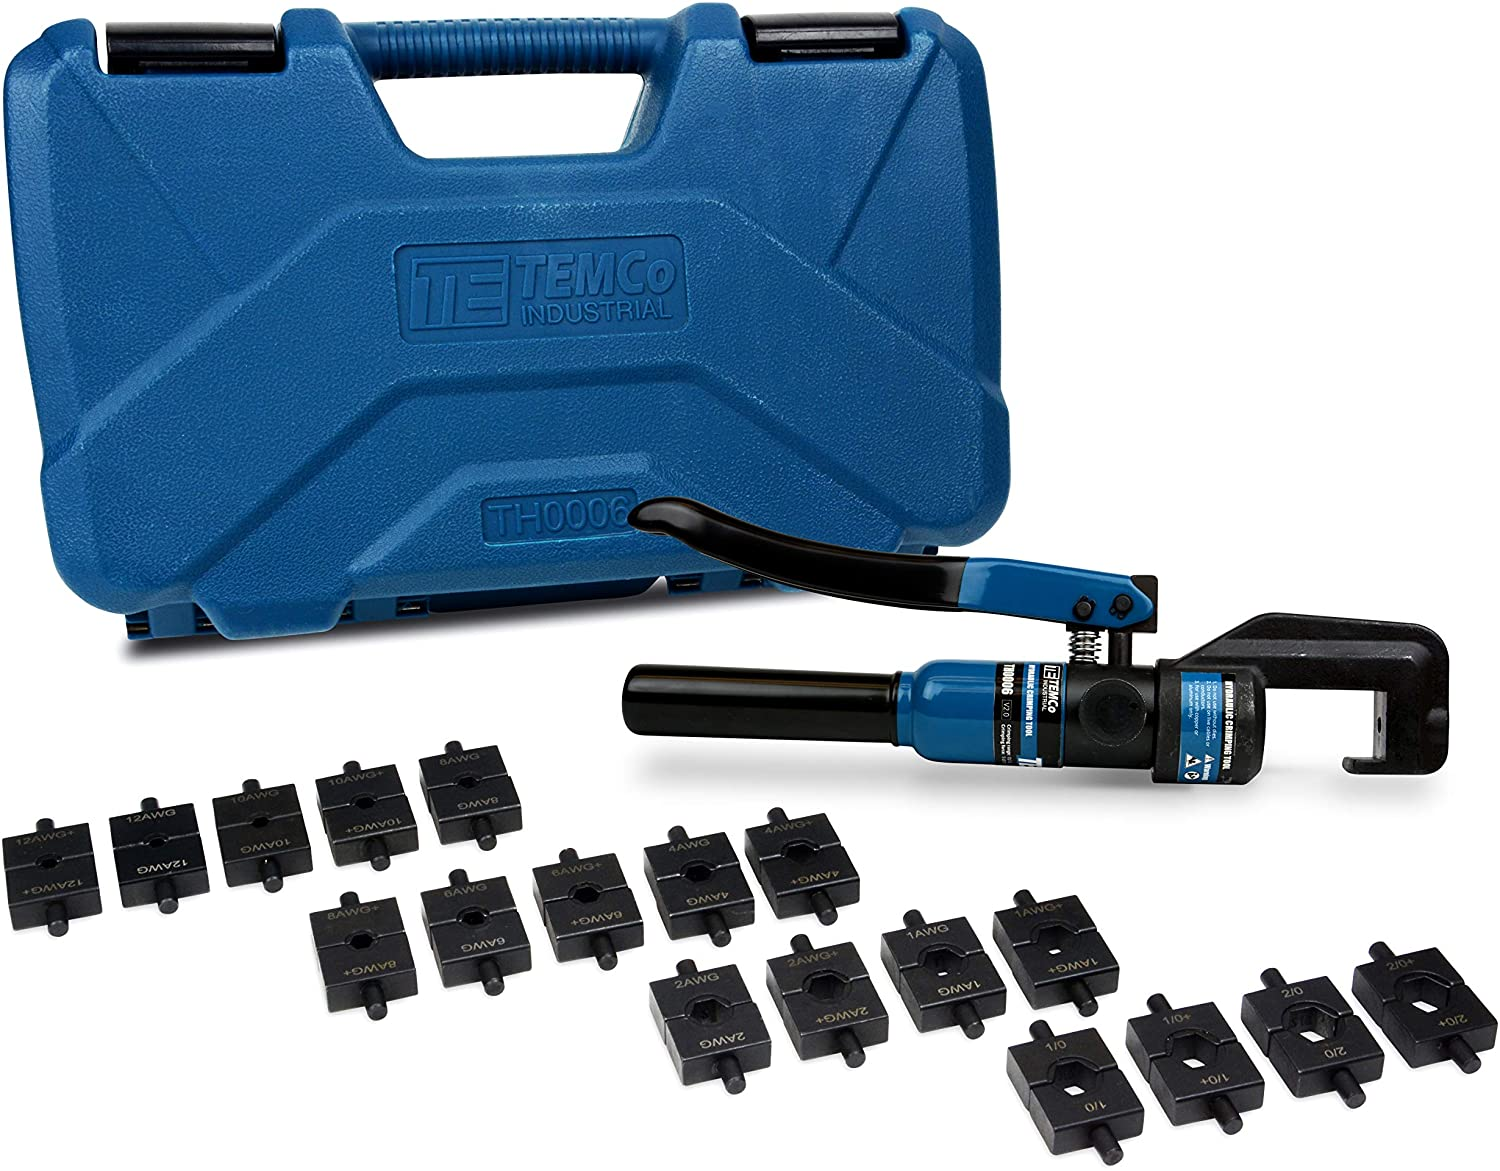 TEMCo TH0006 Hydraulic Cable Lug Crimper with 18 Die Sets